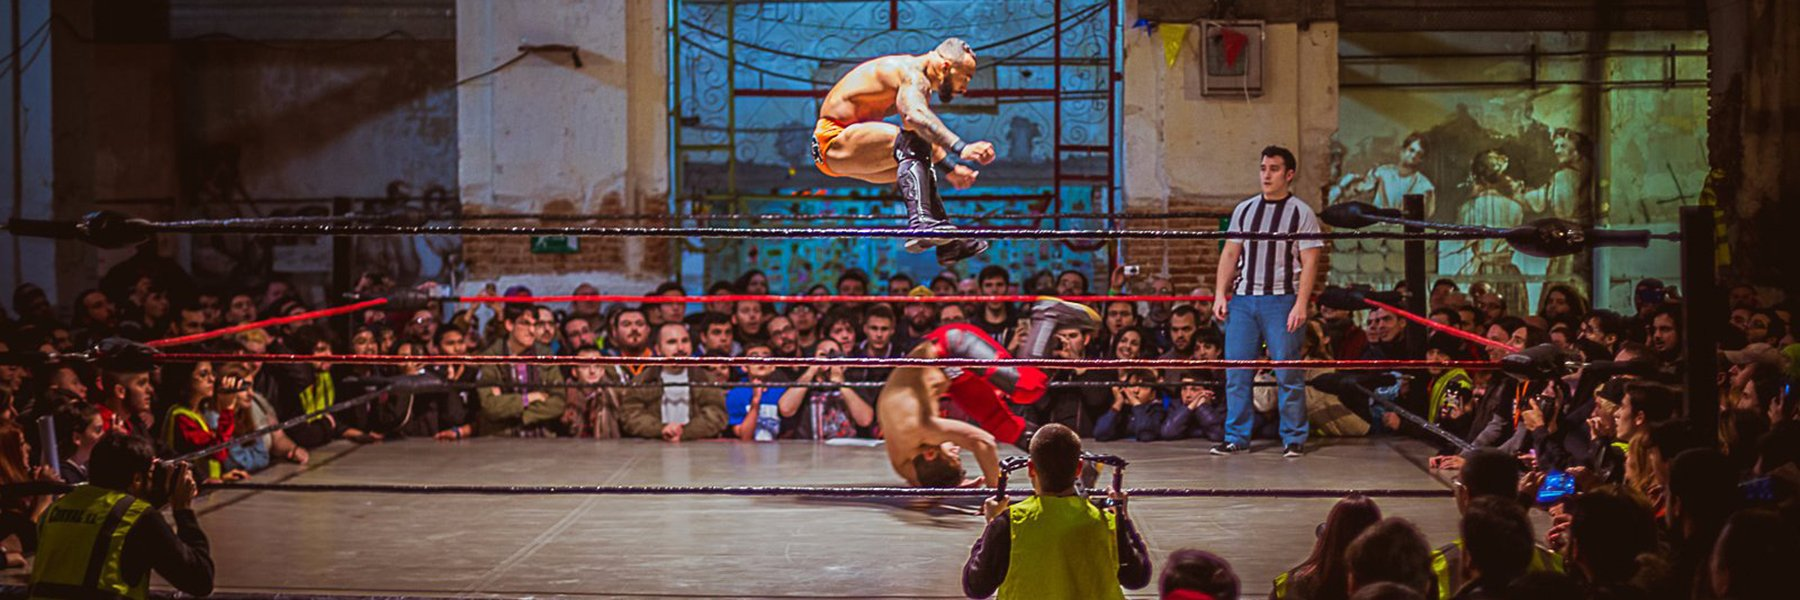 White Wolf Wrestling from Spain